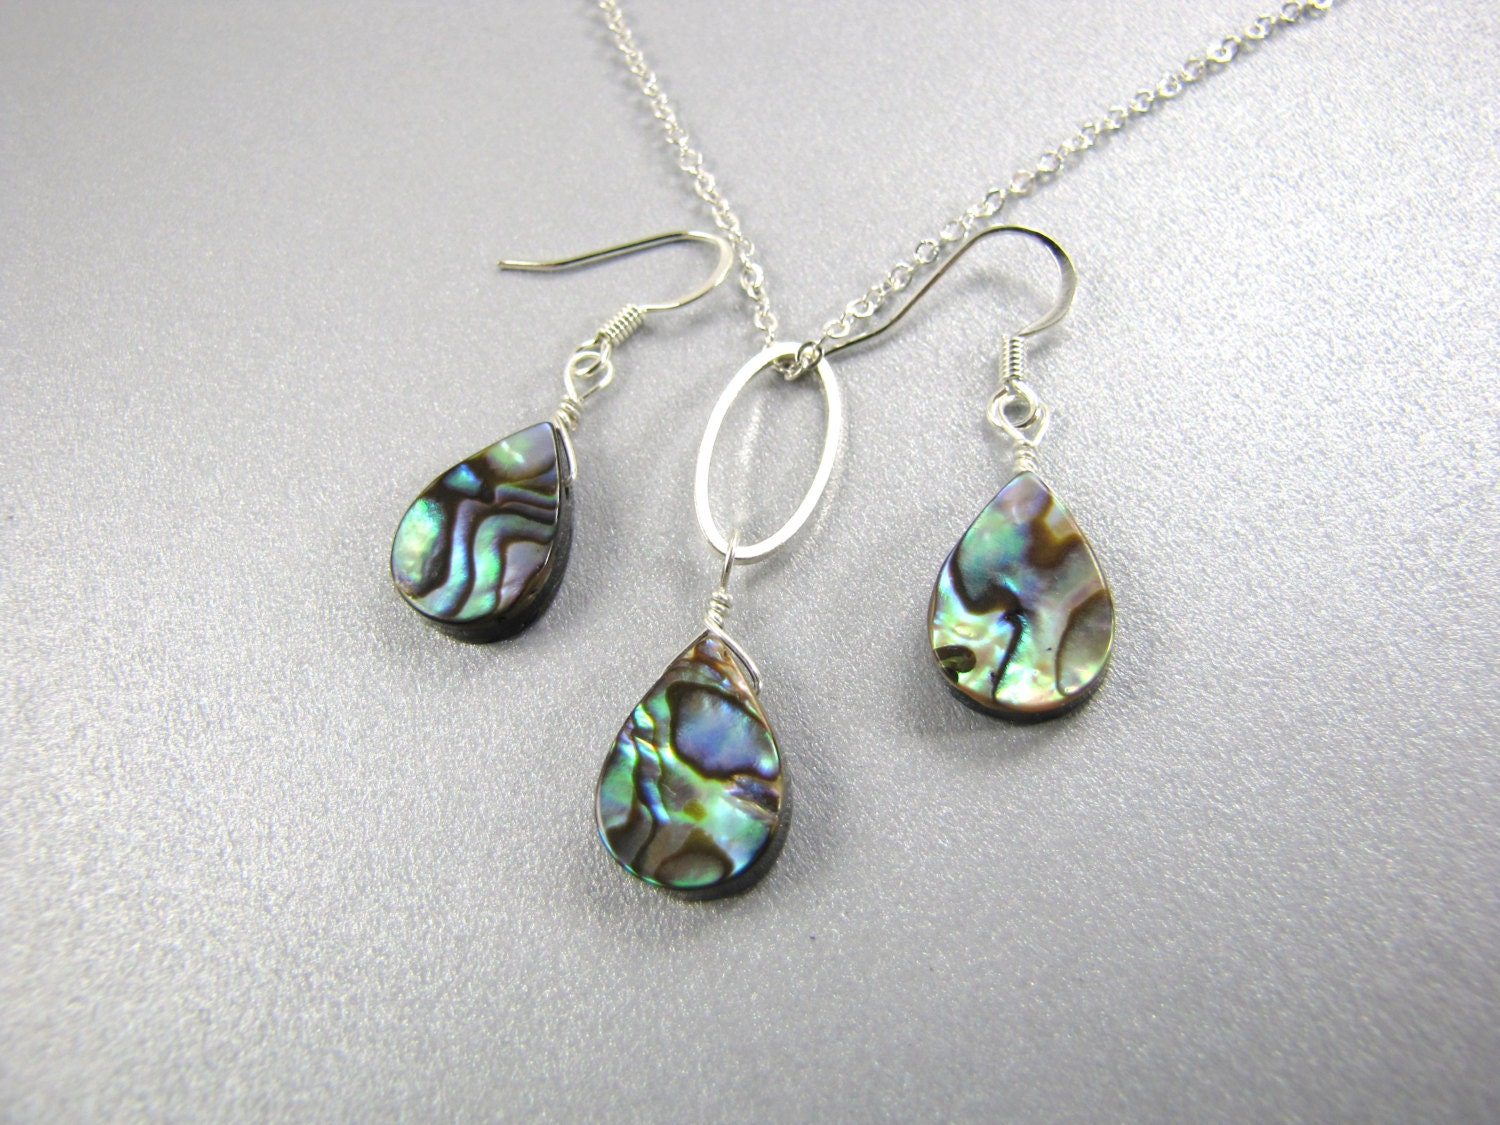 abalone earrings and necklace paua shell earrings paua shell